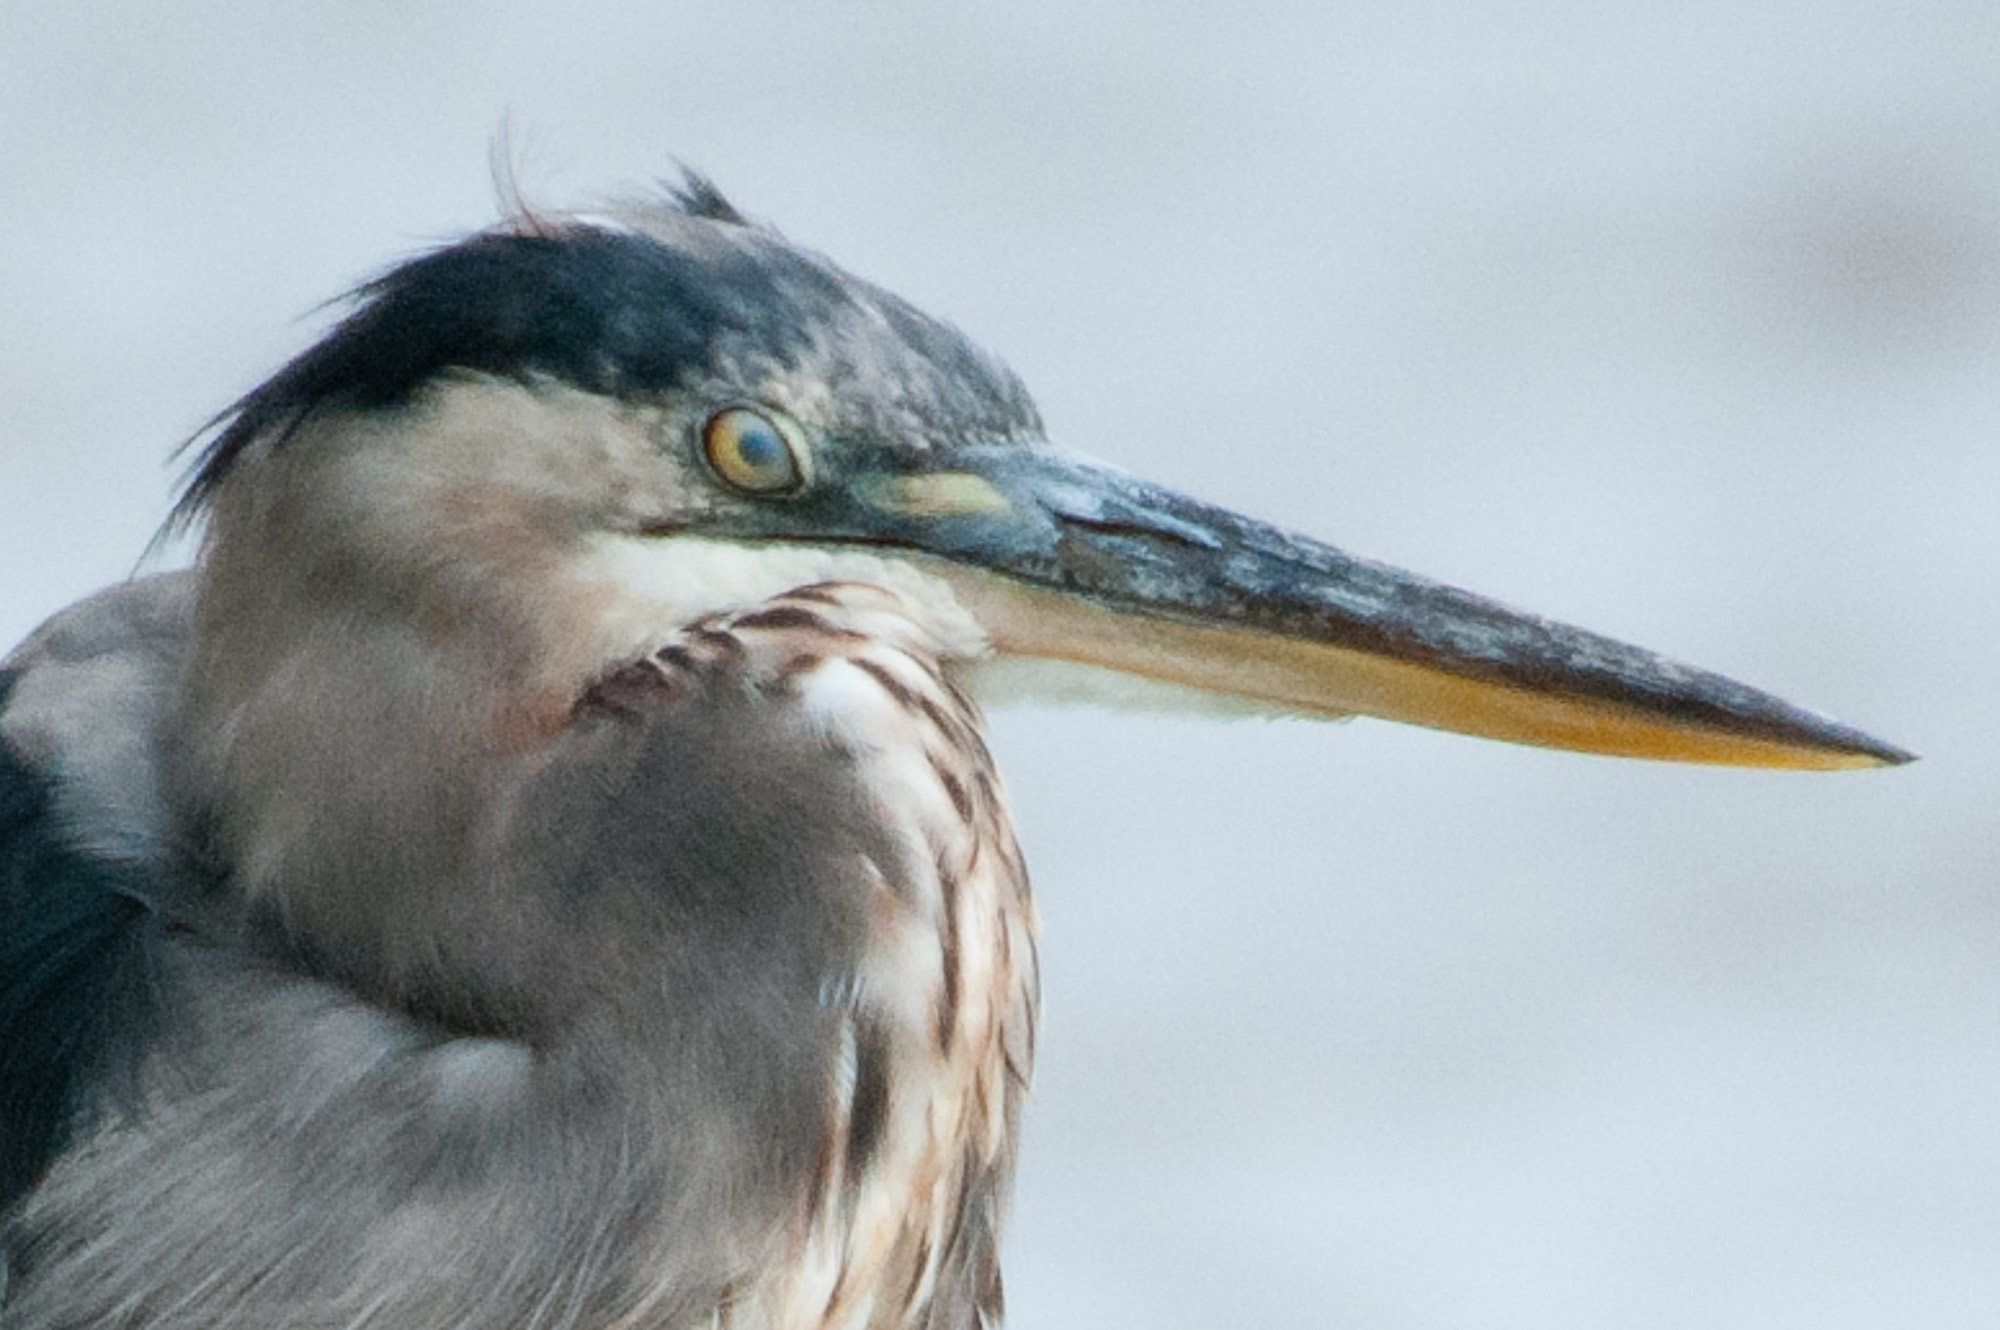 Great Blue Heron with eye clouded over by nictitating membrane.